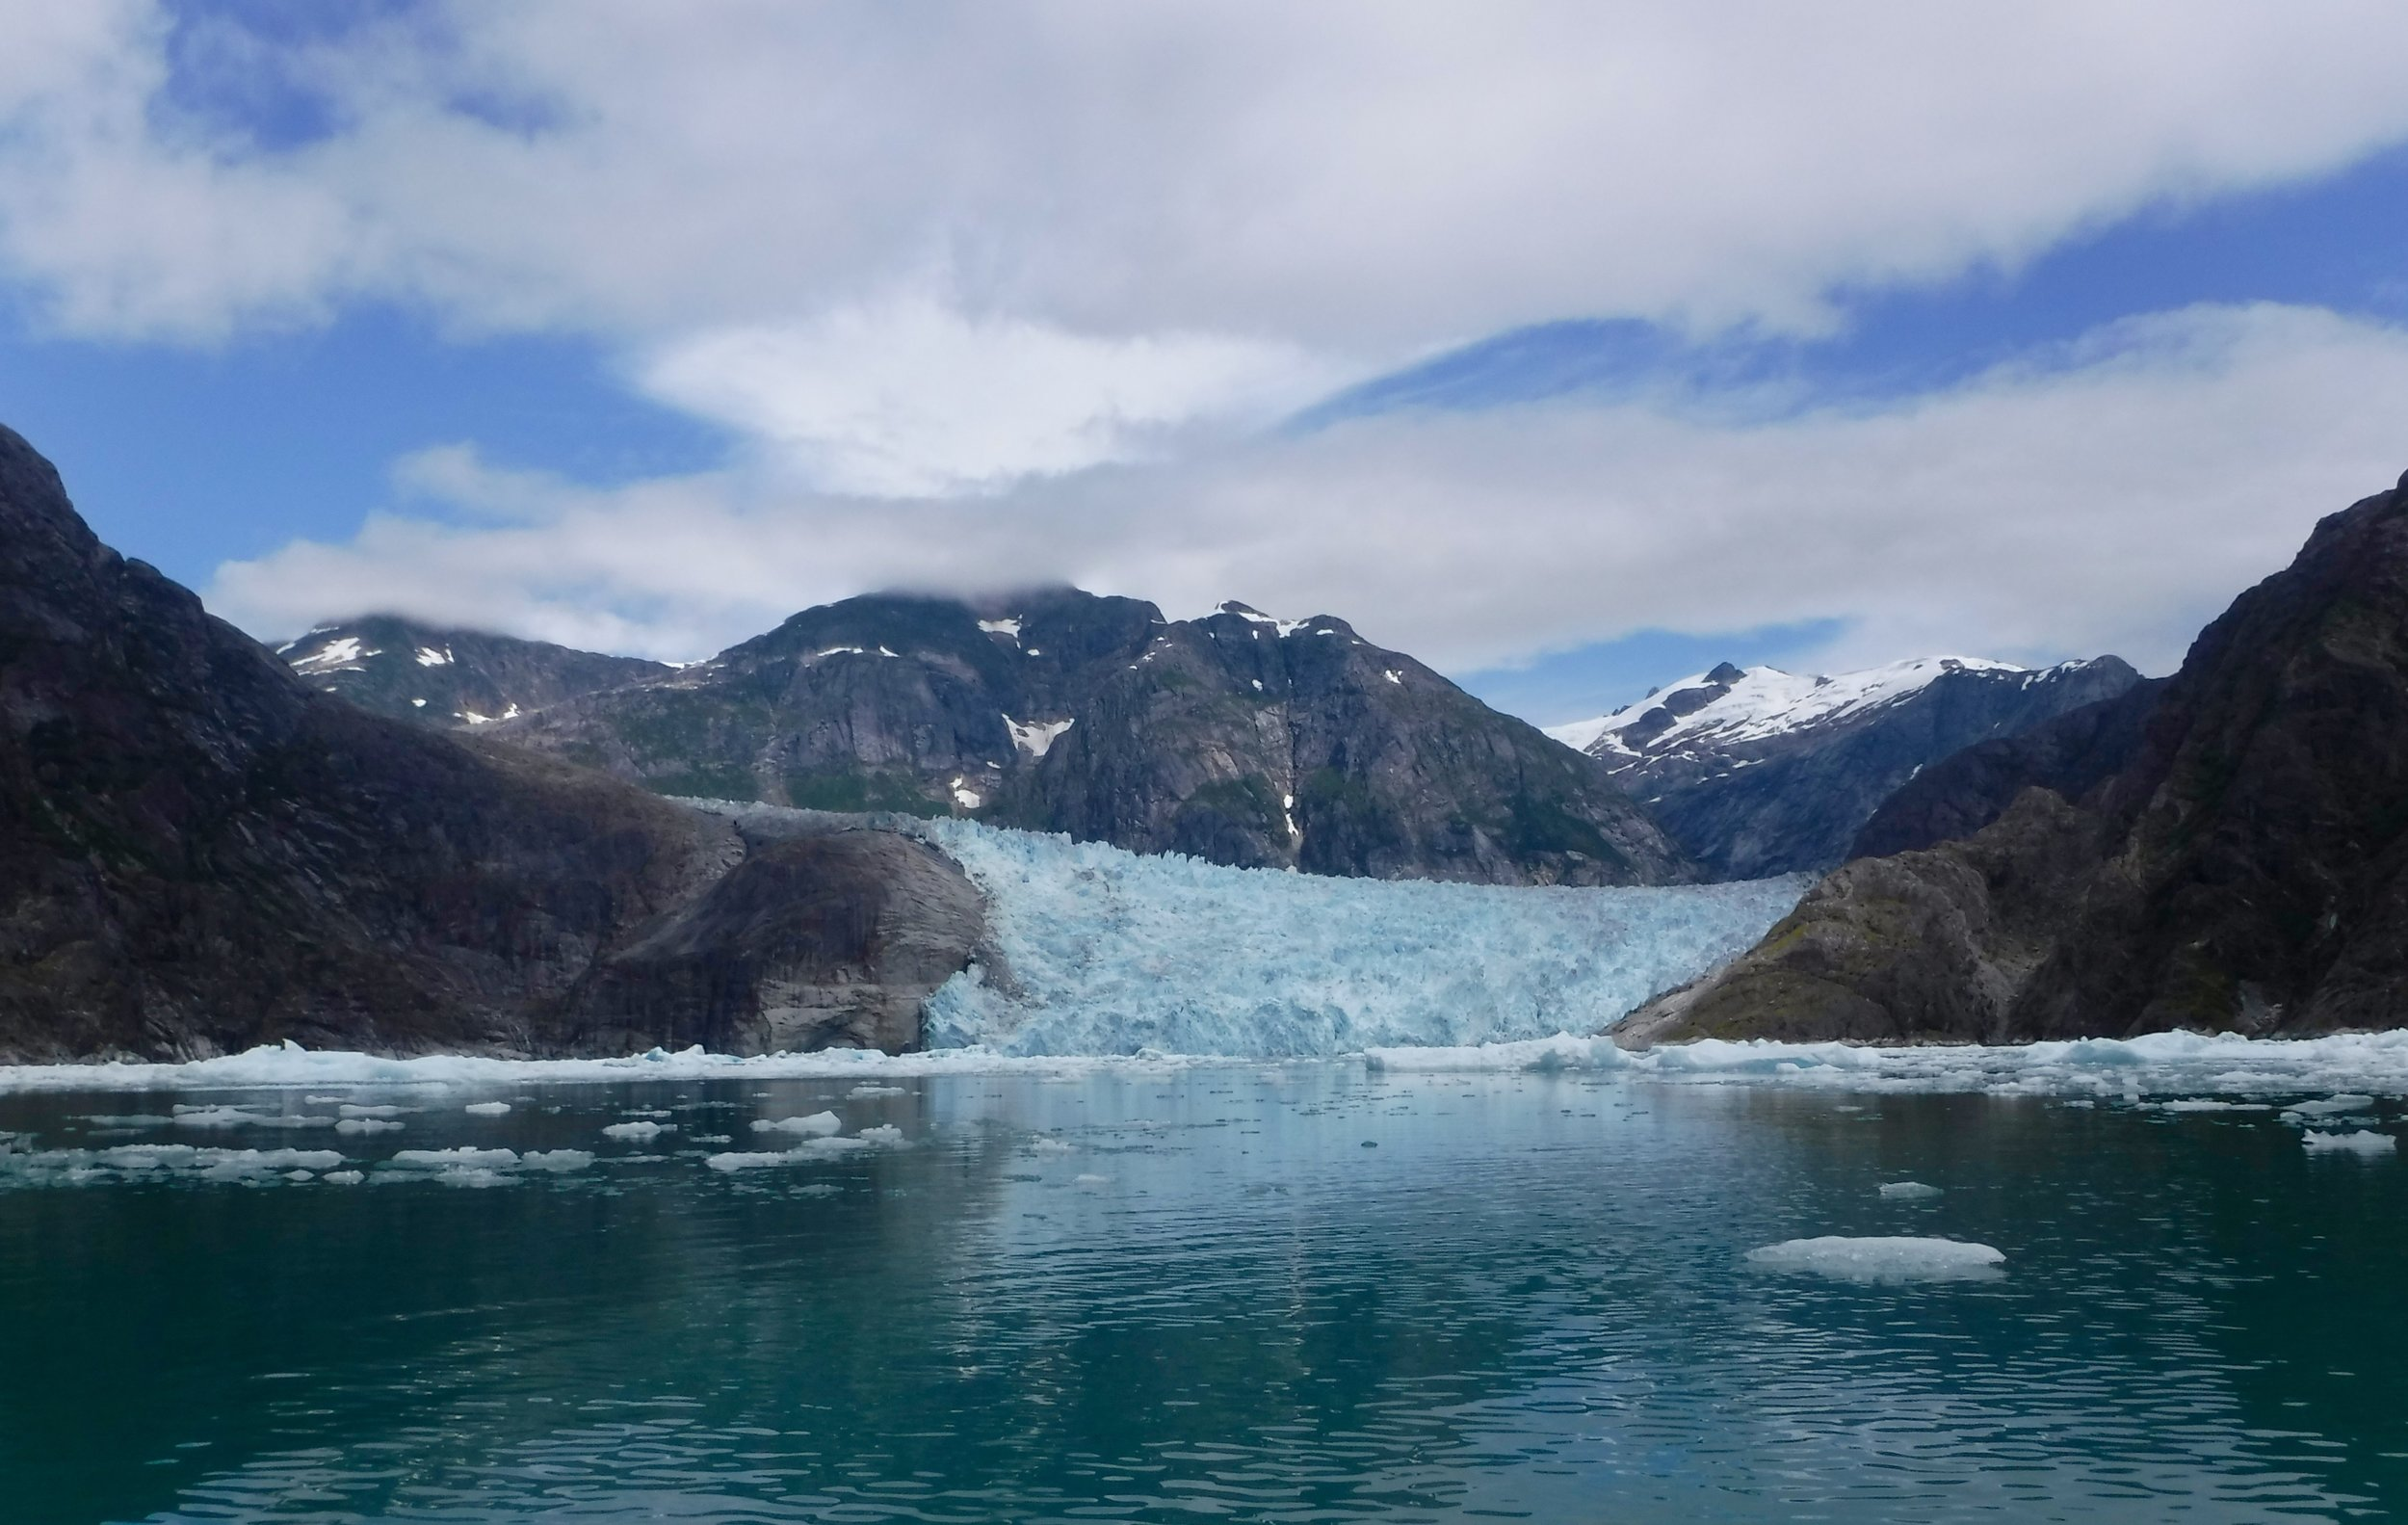 A very active glacier with lots of calving